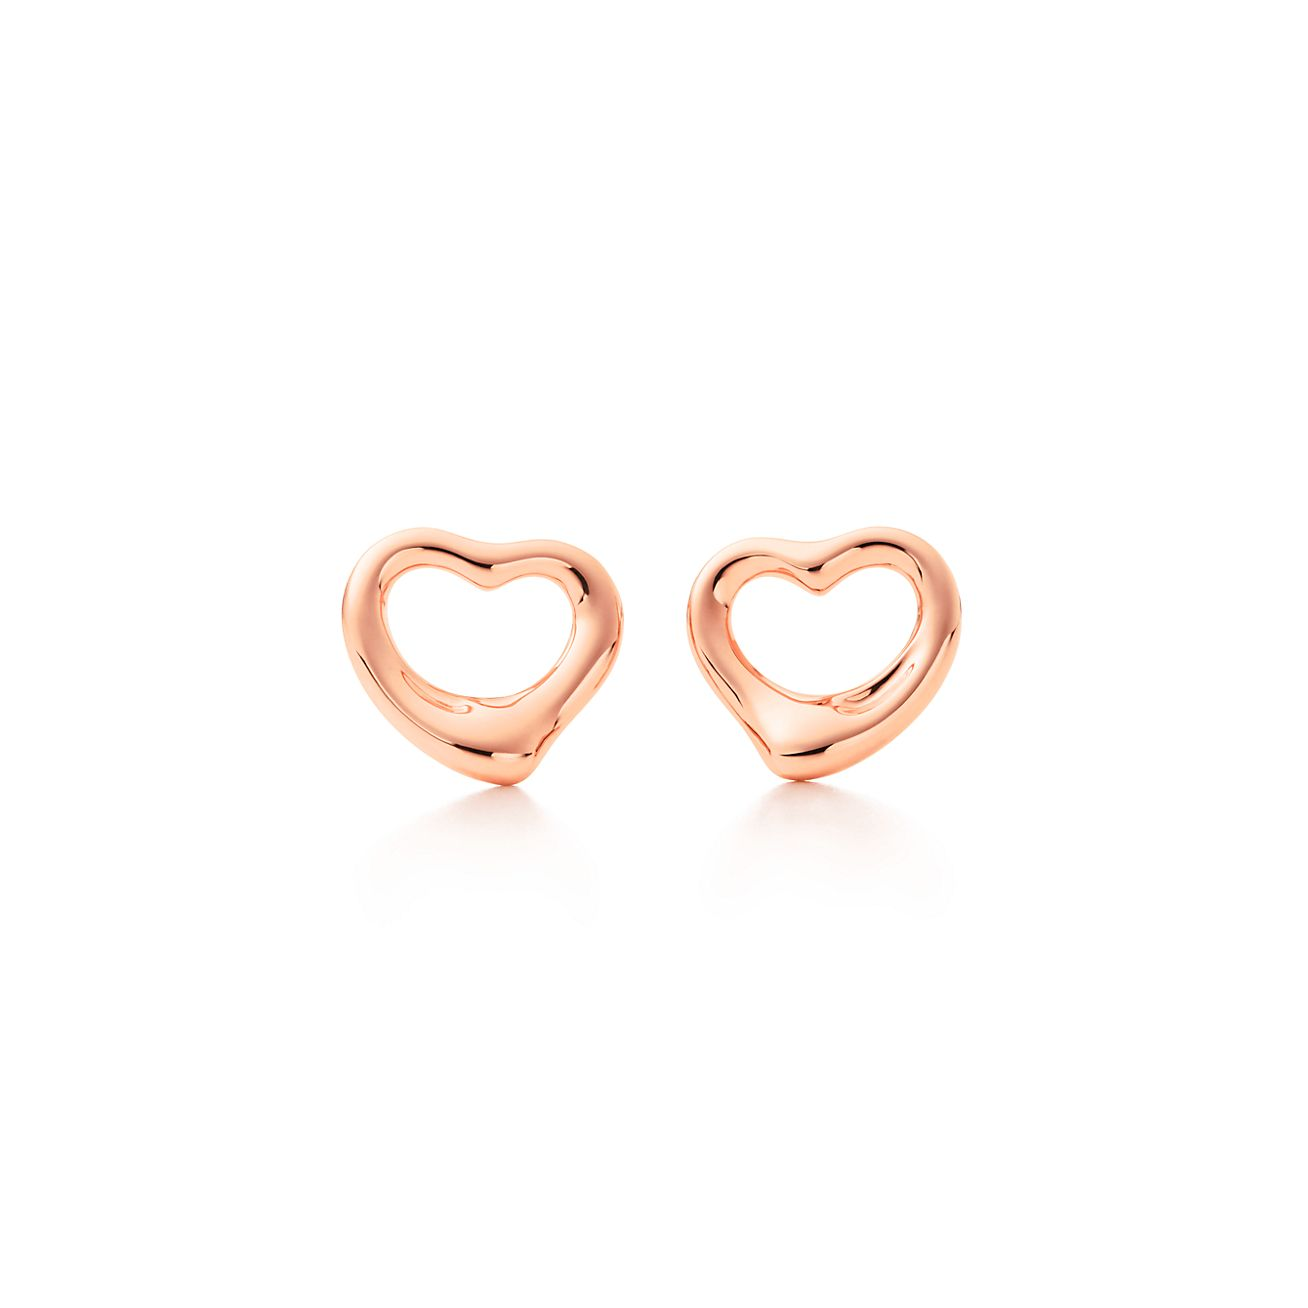 Jewelry Earrings Elsa Peretti Open Heart Earrings 27233945 Tiffany Earrings Heart